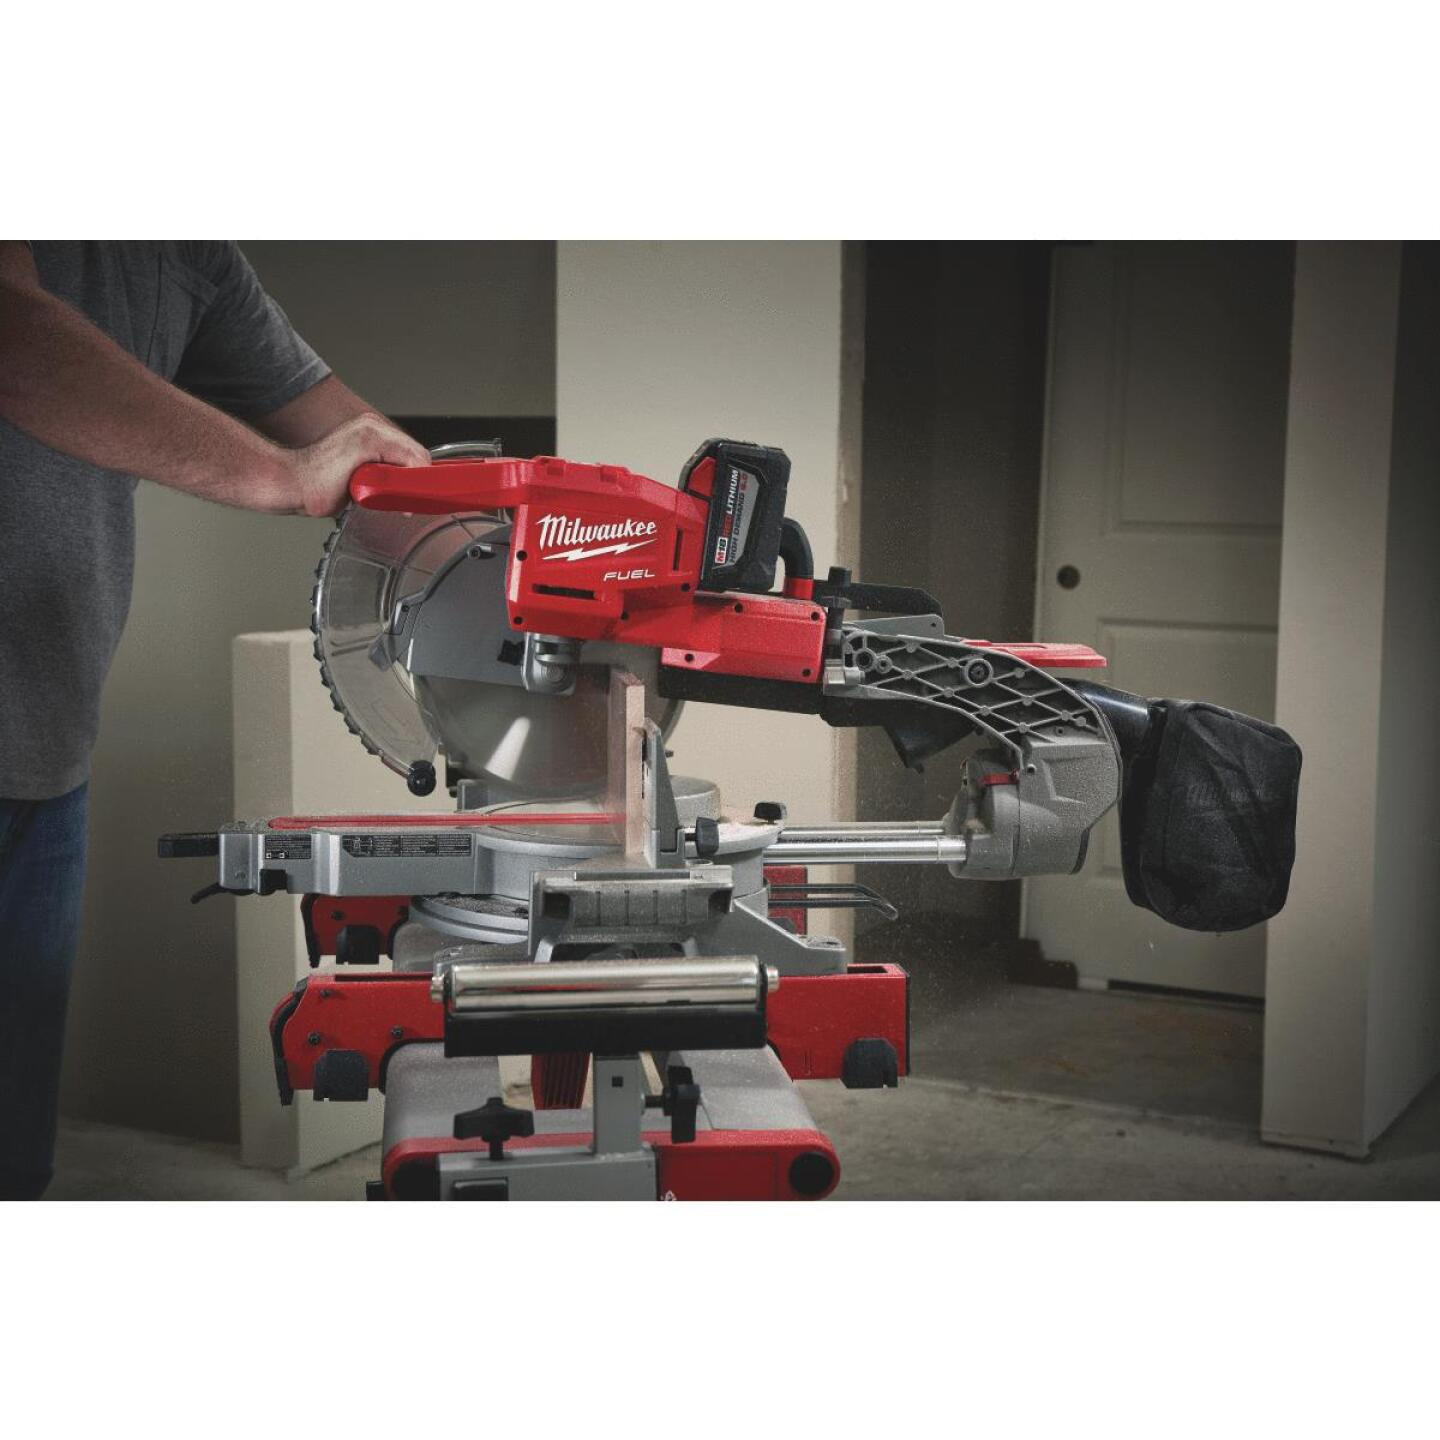 Milwaukee M18 FUEL 18-Volt Lithium-Ion Brushless Dual-Bevel Sliding Compound Cordless Miter Saw Kit Image 2